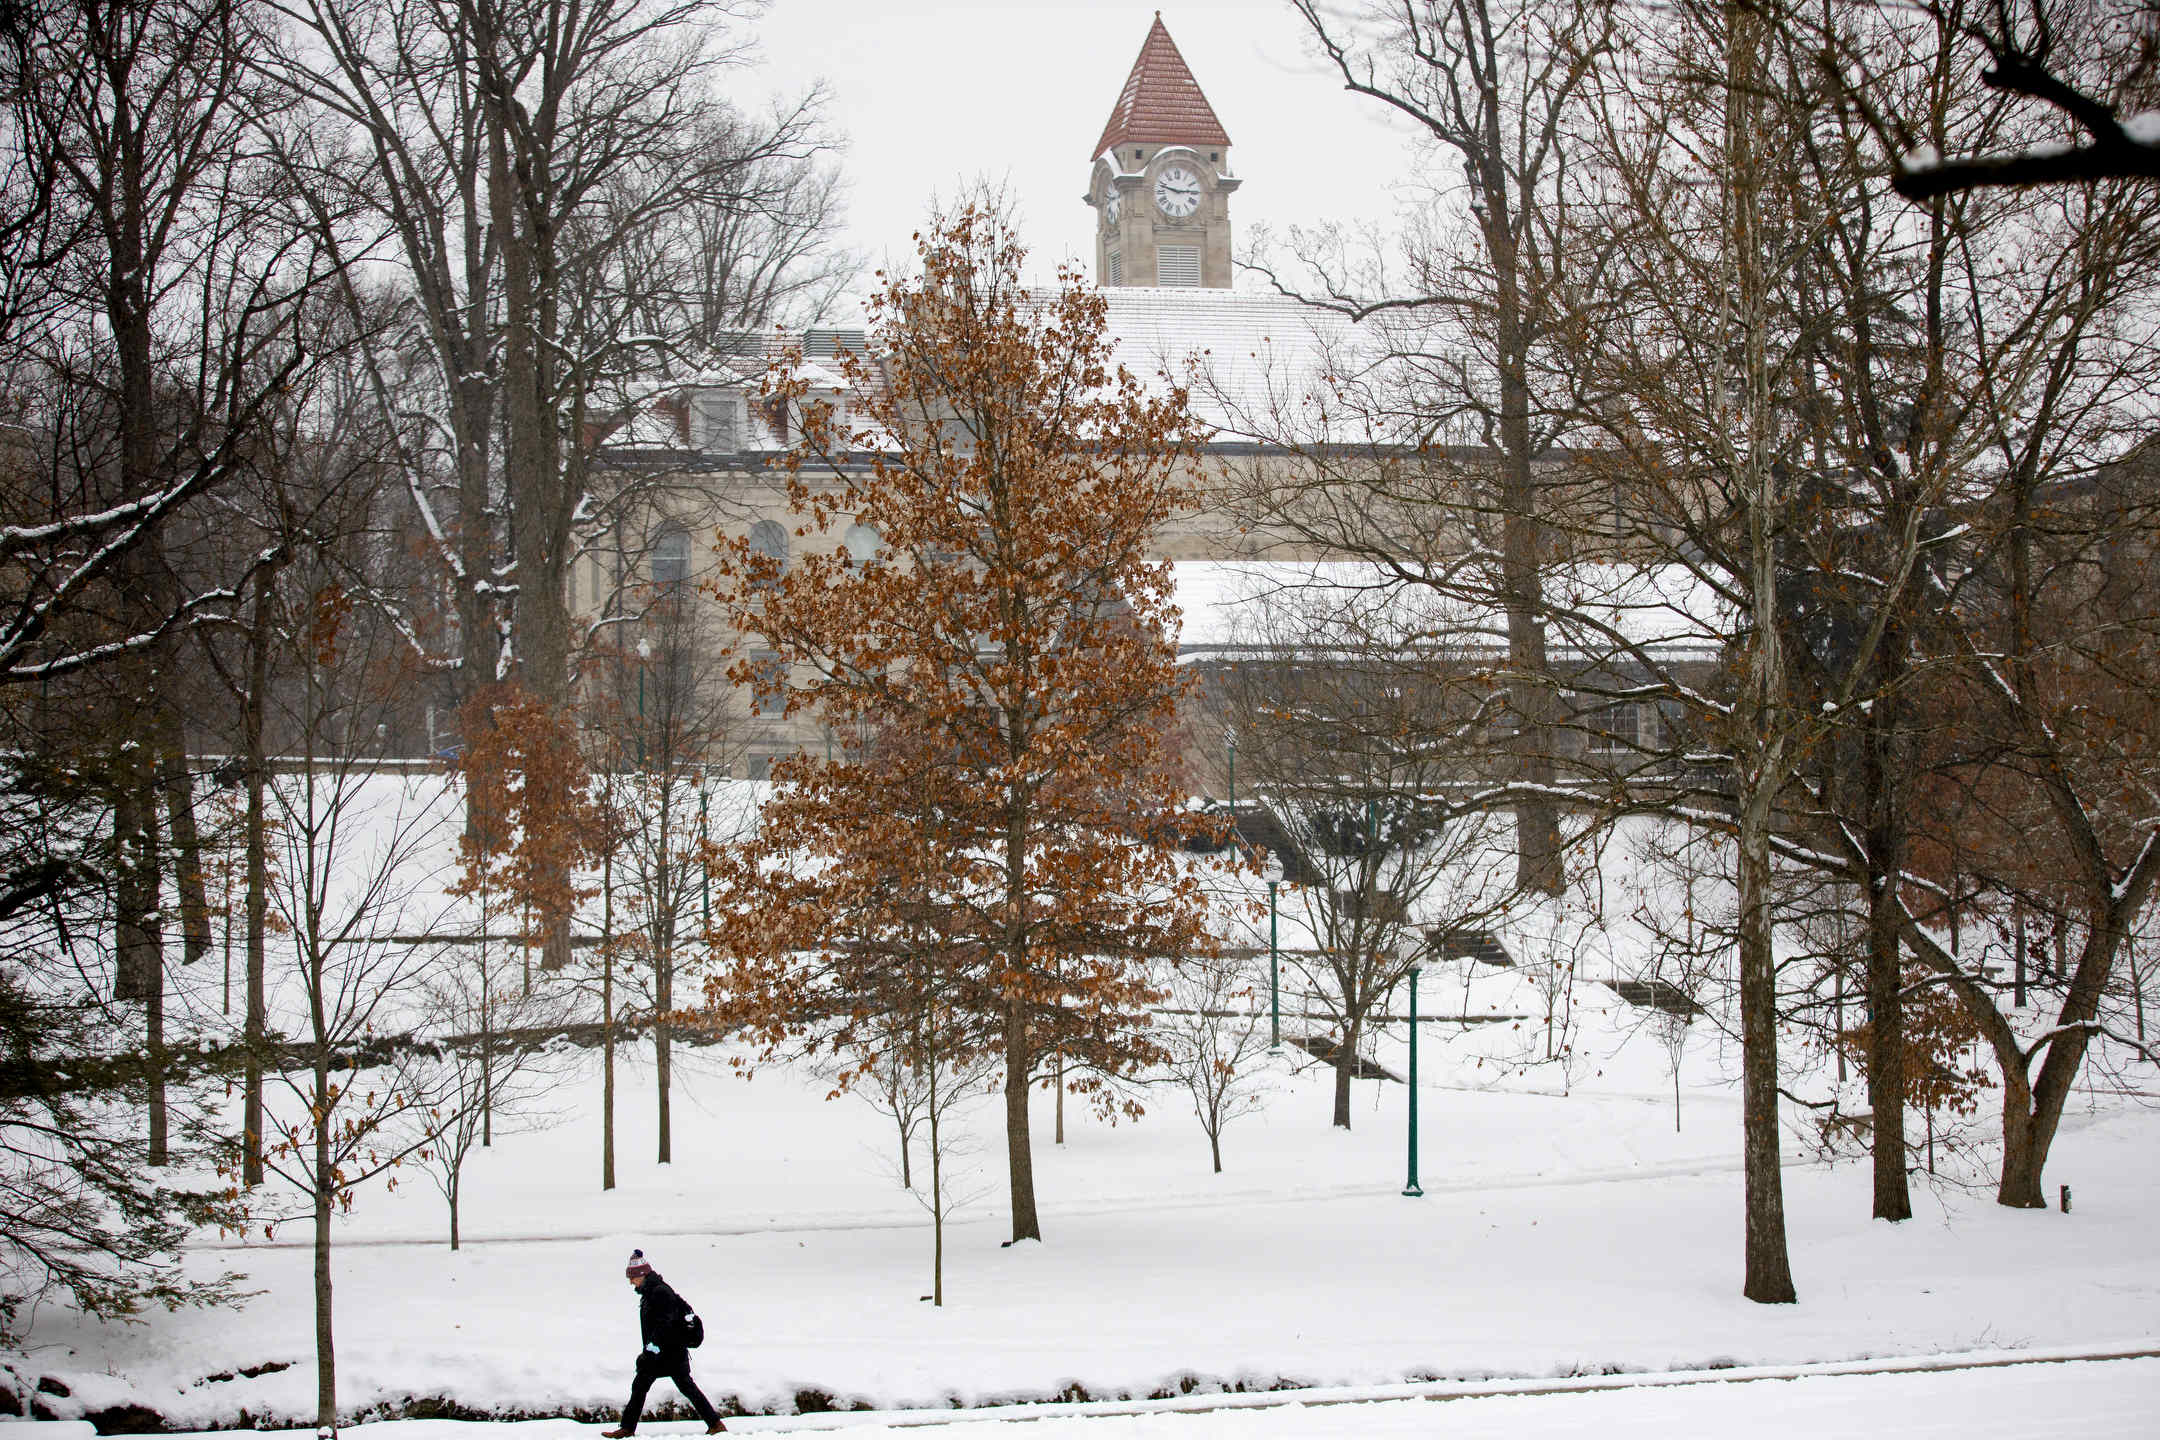 A student walks through a snow-covered Dunn Meadow on a winter day at Indiana University Bloomington on Wednesday, Feb. 10, 2021. Pictured in background is the Student Building clock tower.